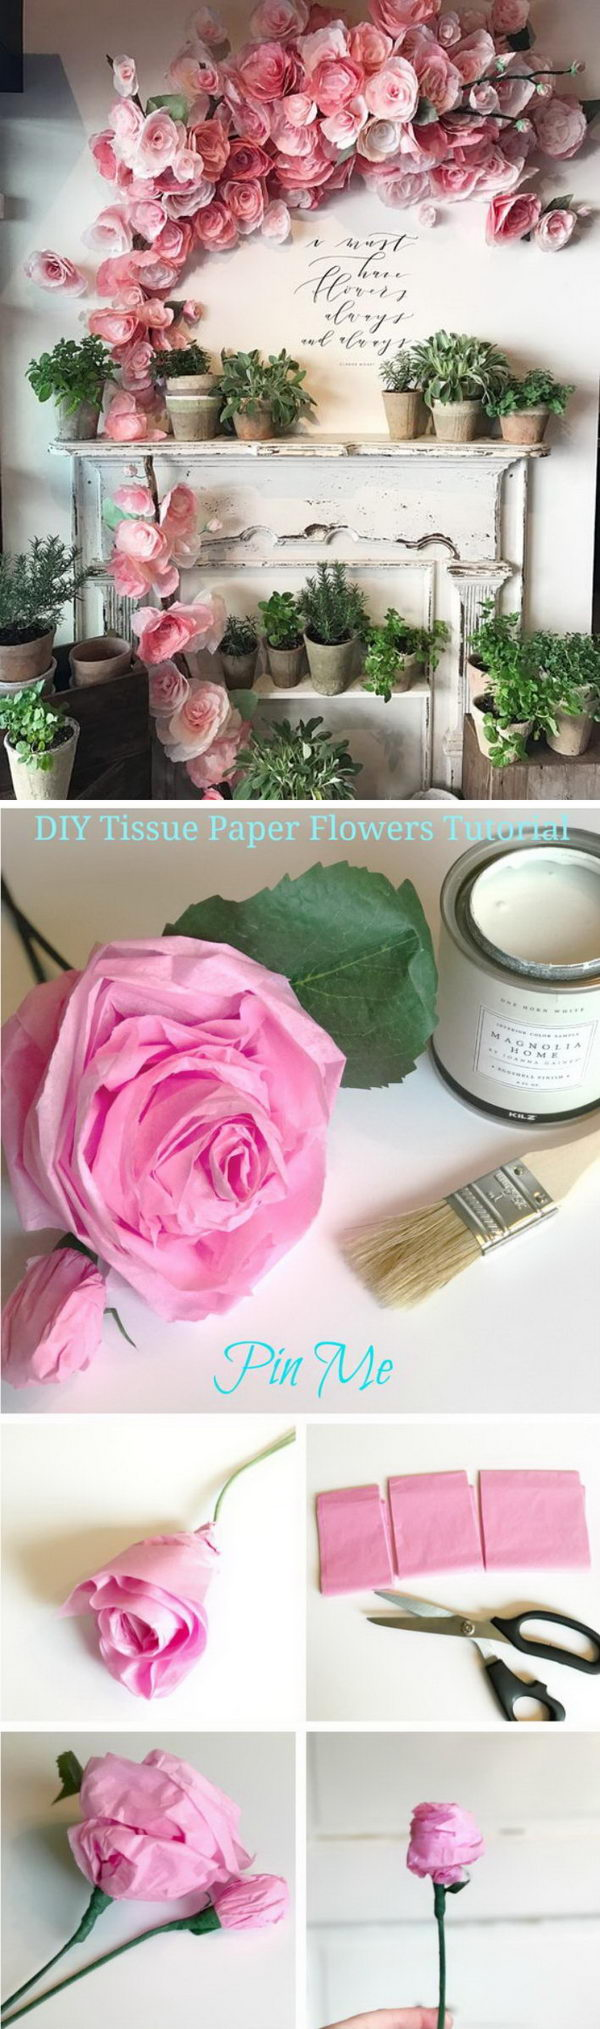 DIY Tissue Paper Flowers Wall Arrangement.